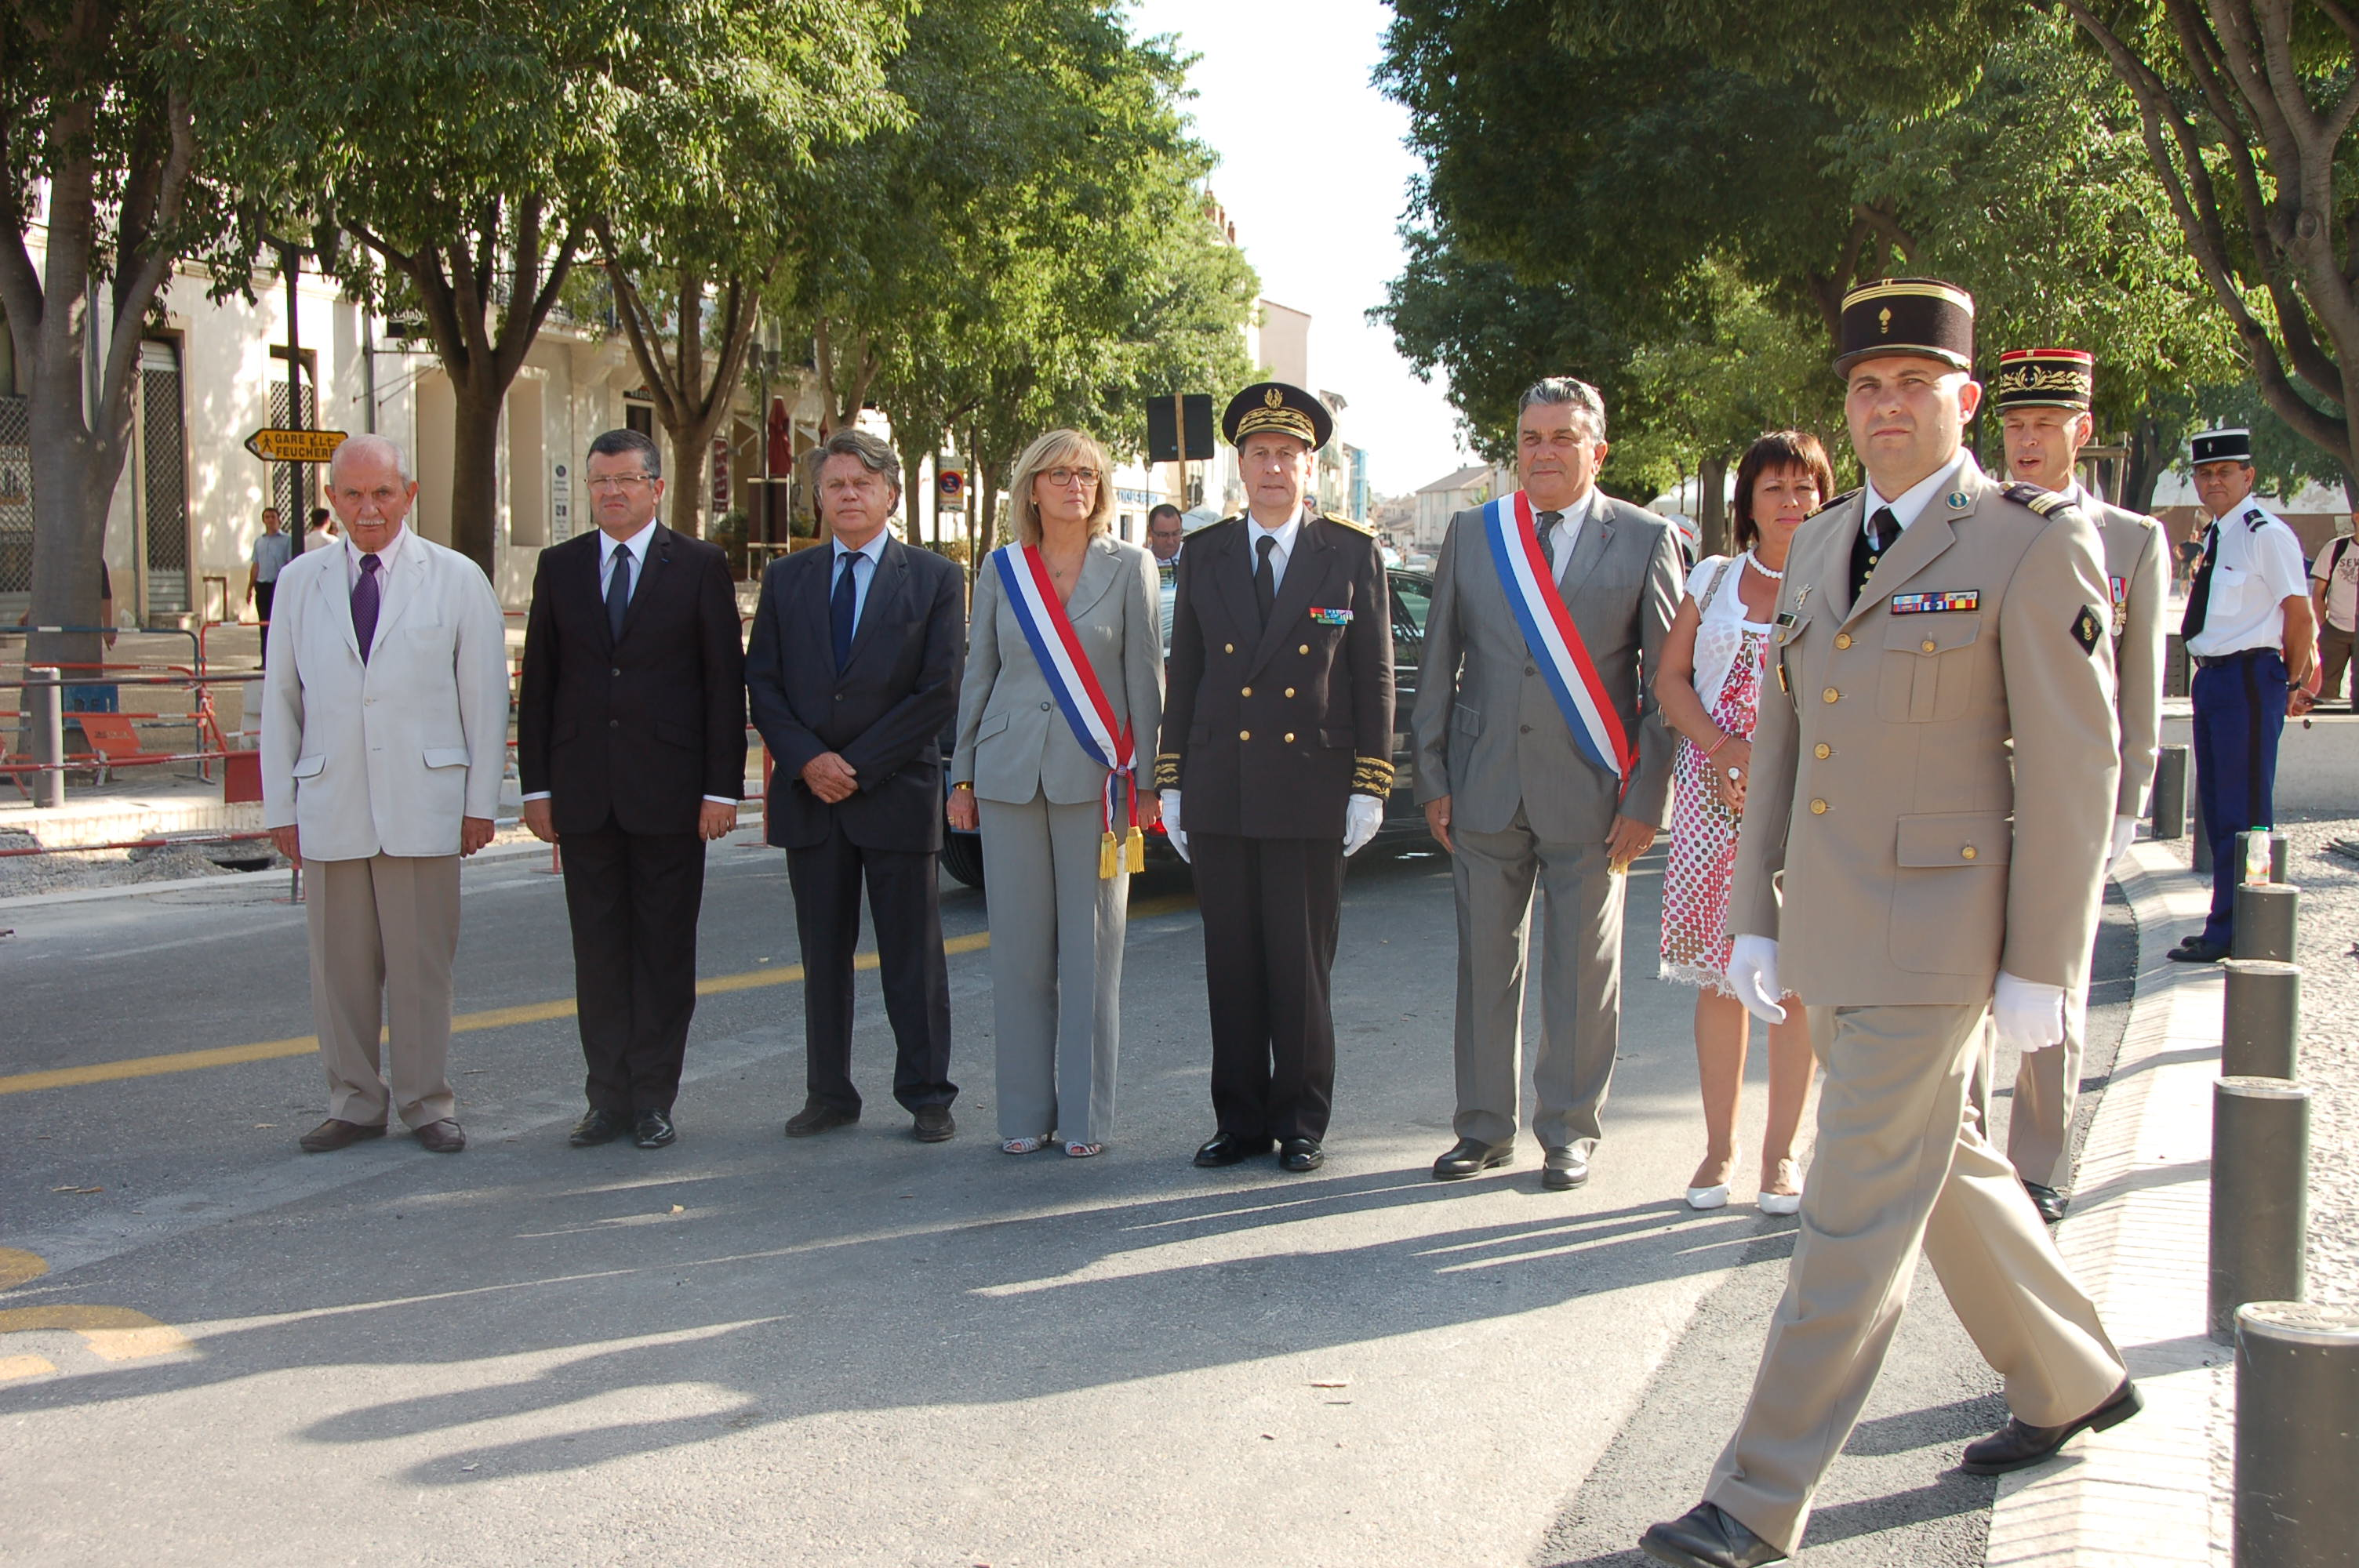 Photo of FÊTE NATIONALE 2012 : Plus de 200 militaires défilent boulevard de la Libération à Nîmes